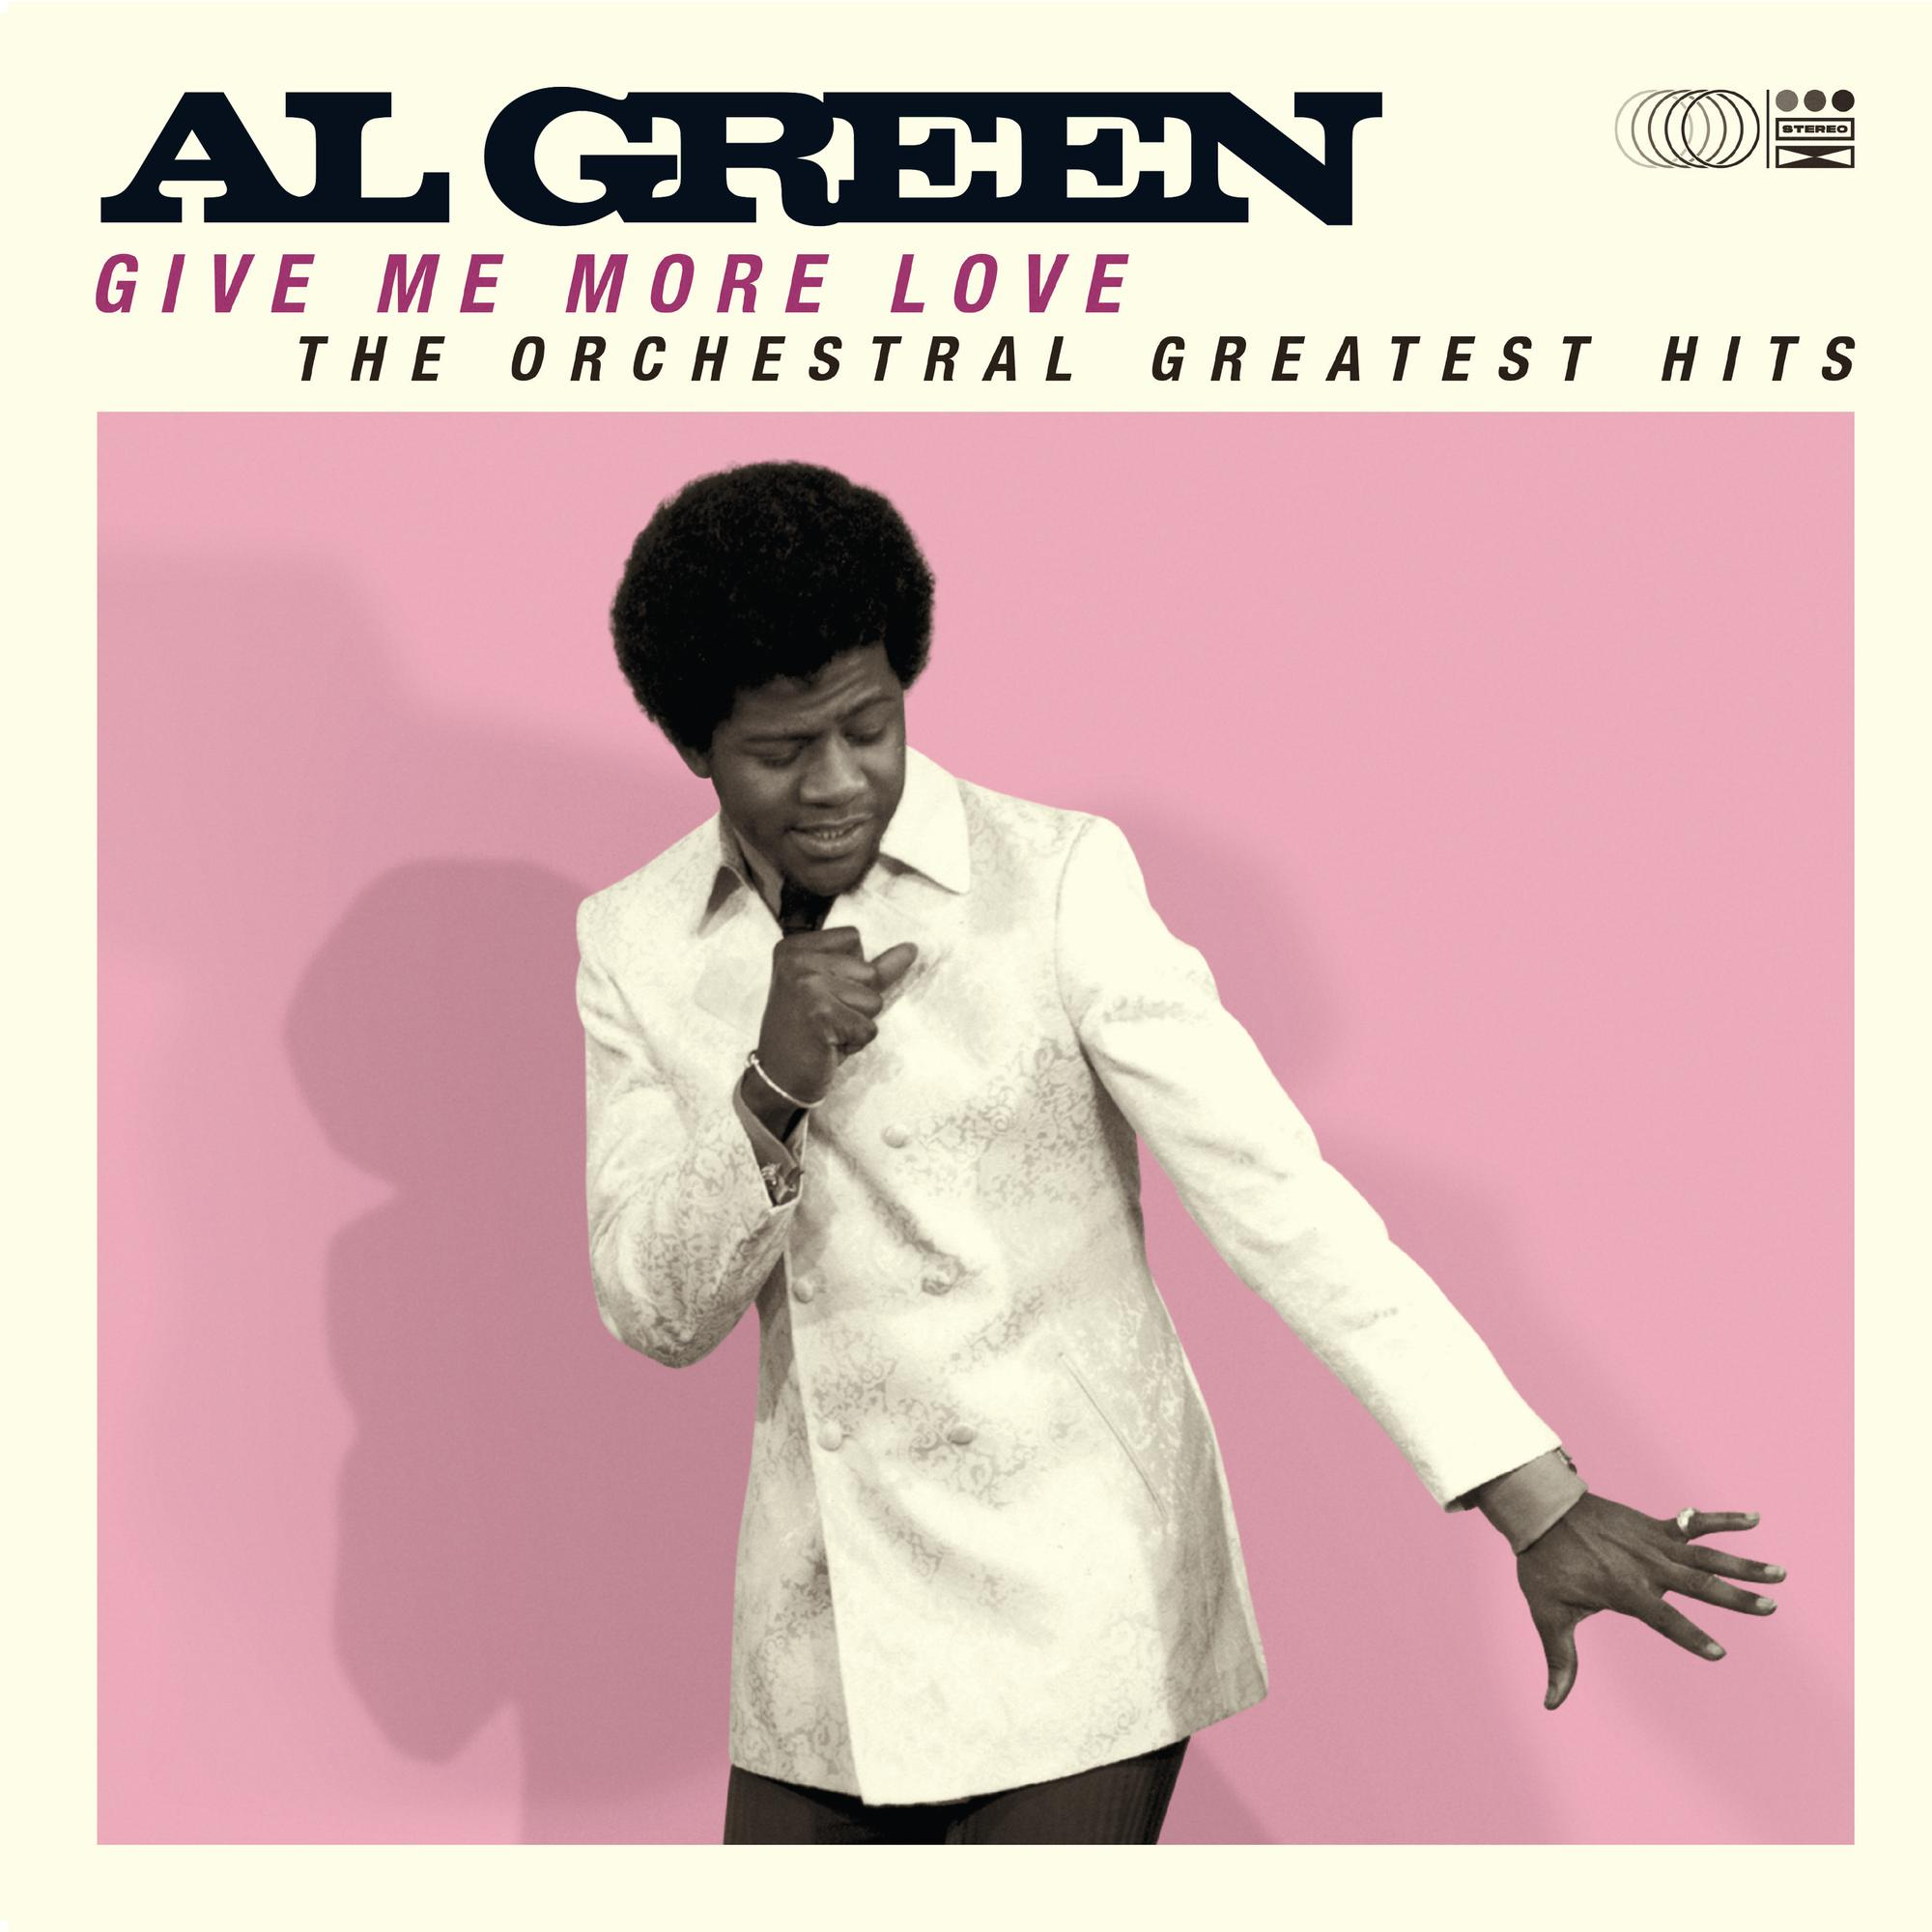 Al Green - Give Me More Love  [RSD Drops 2021]